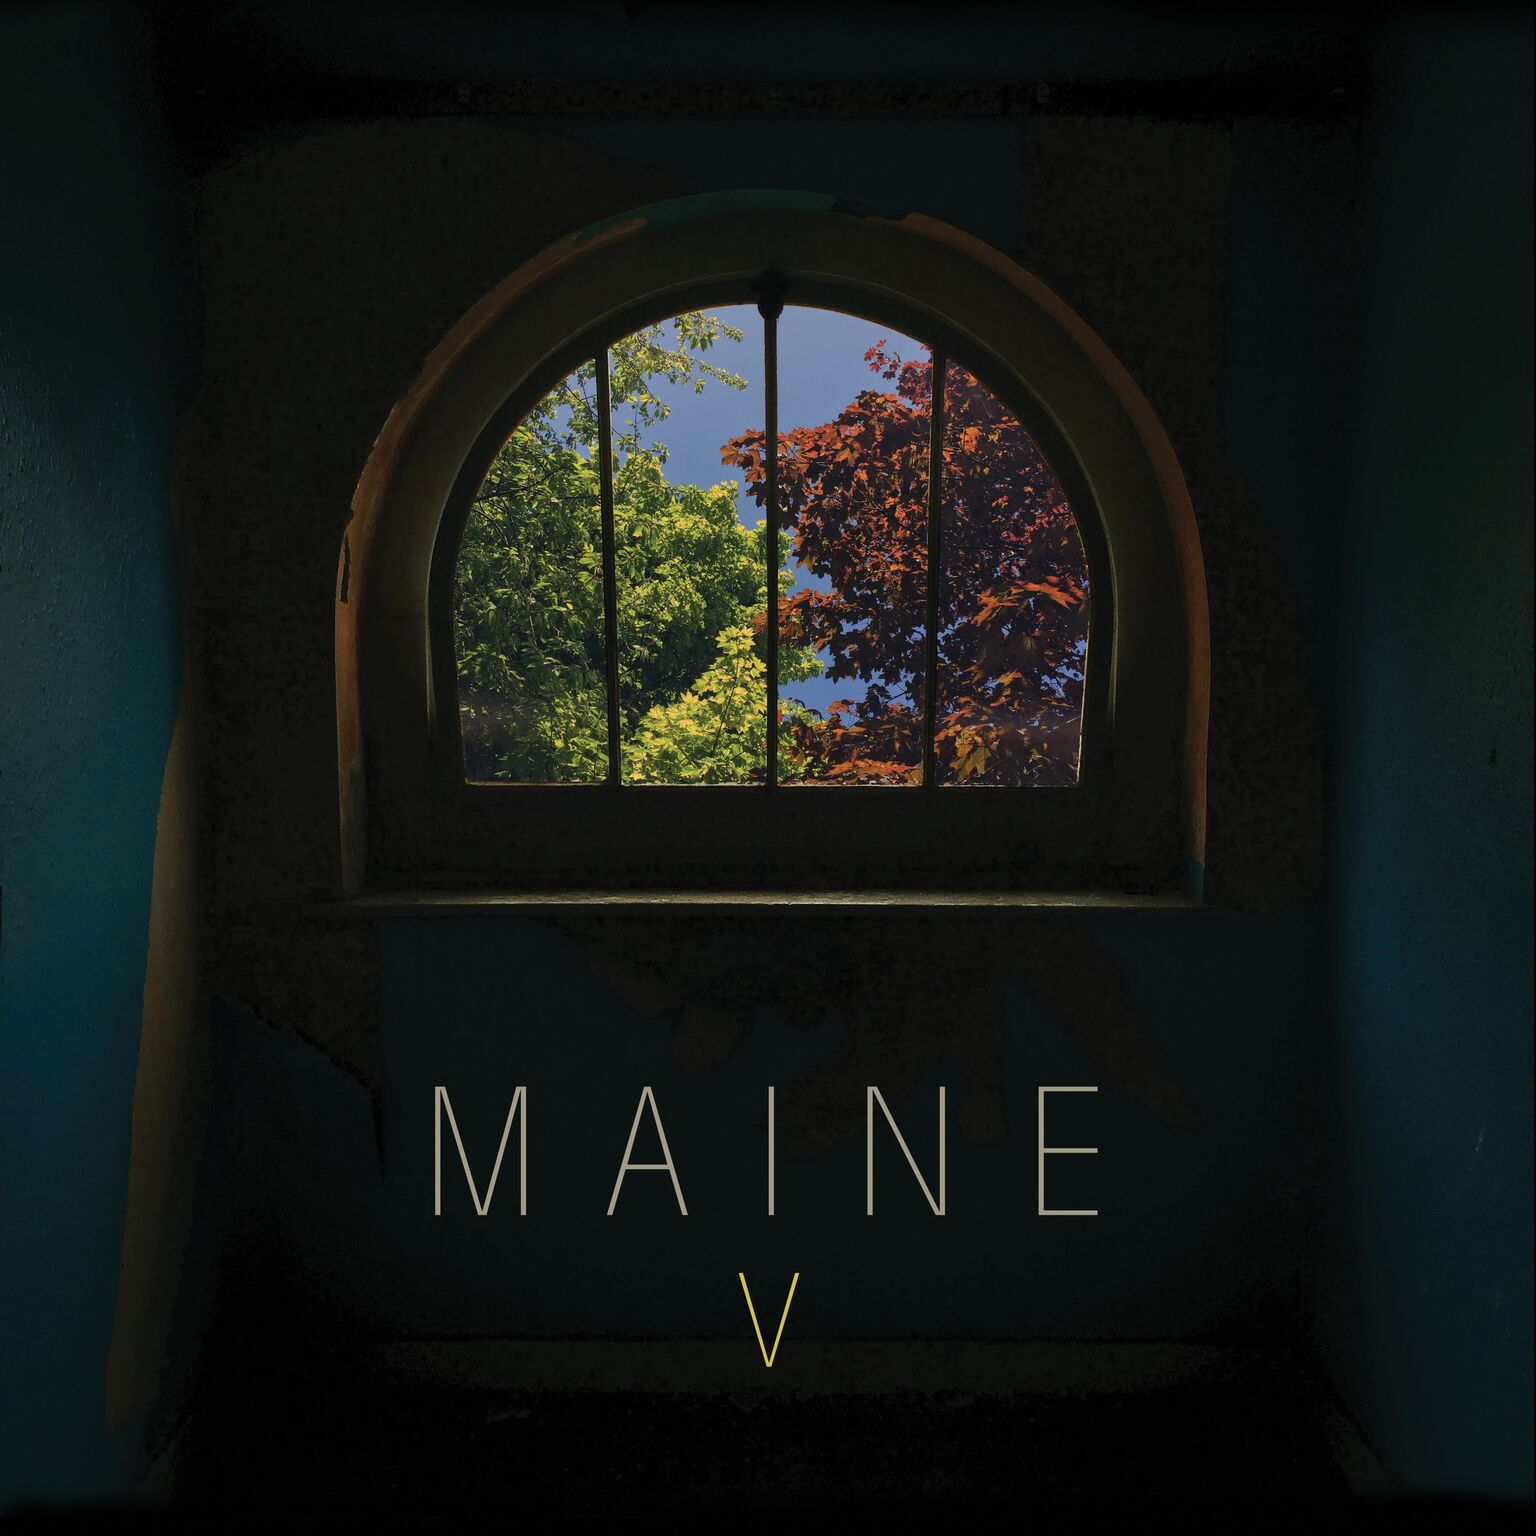 NEWS: French artist MAINE announces his new album 'V'